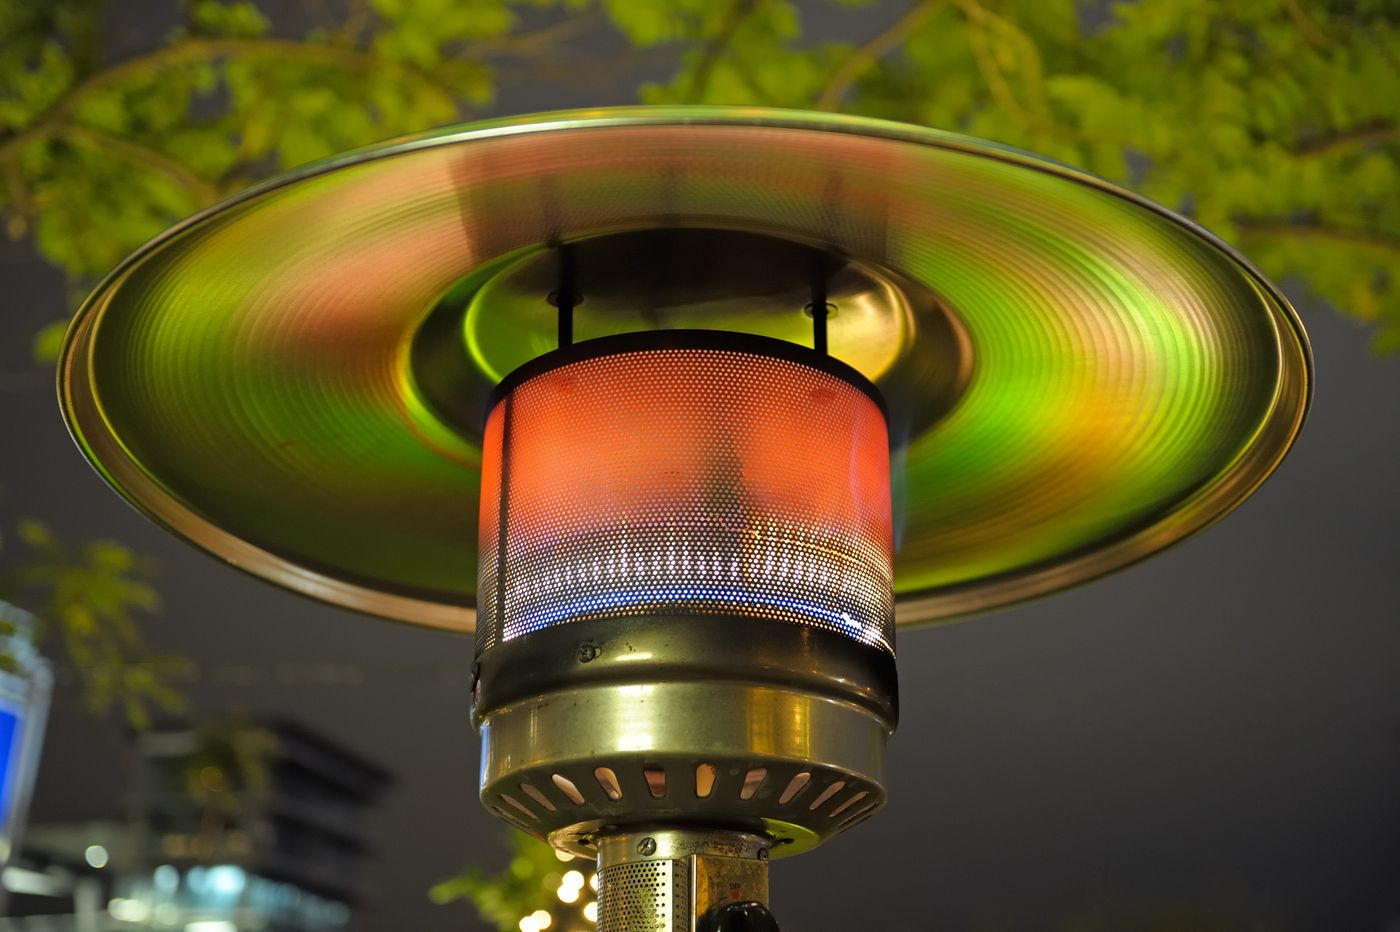 Outdoor heaters are the hot accessory as it gets colder. Here's how to buy one.